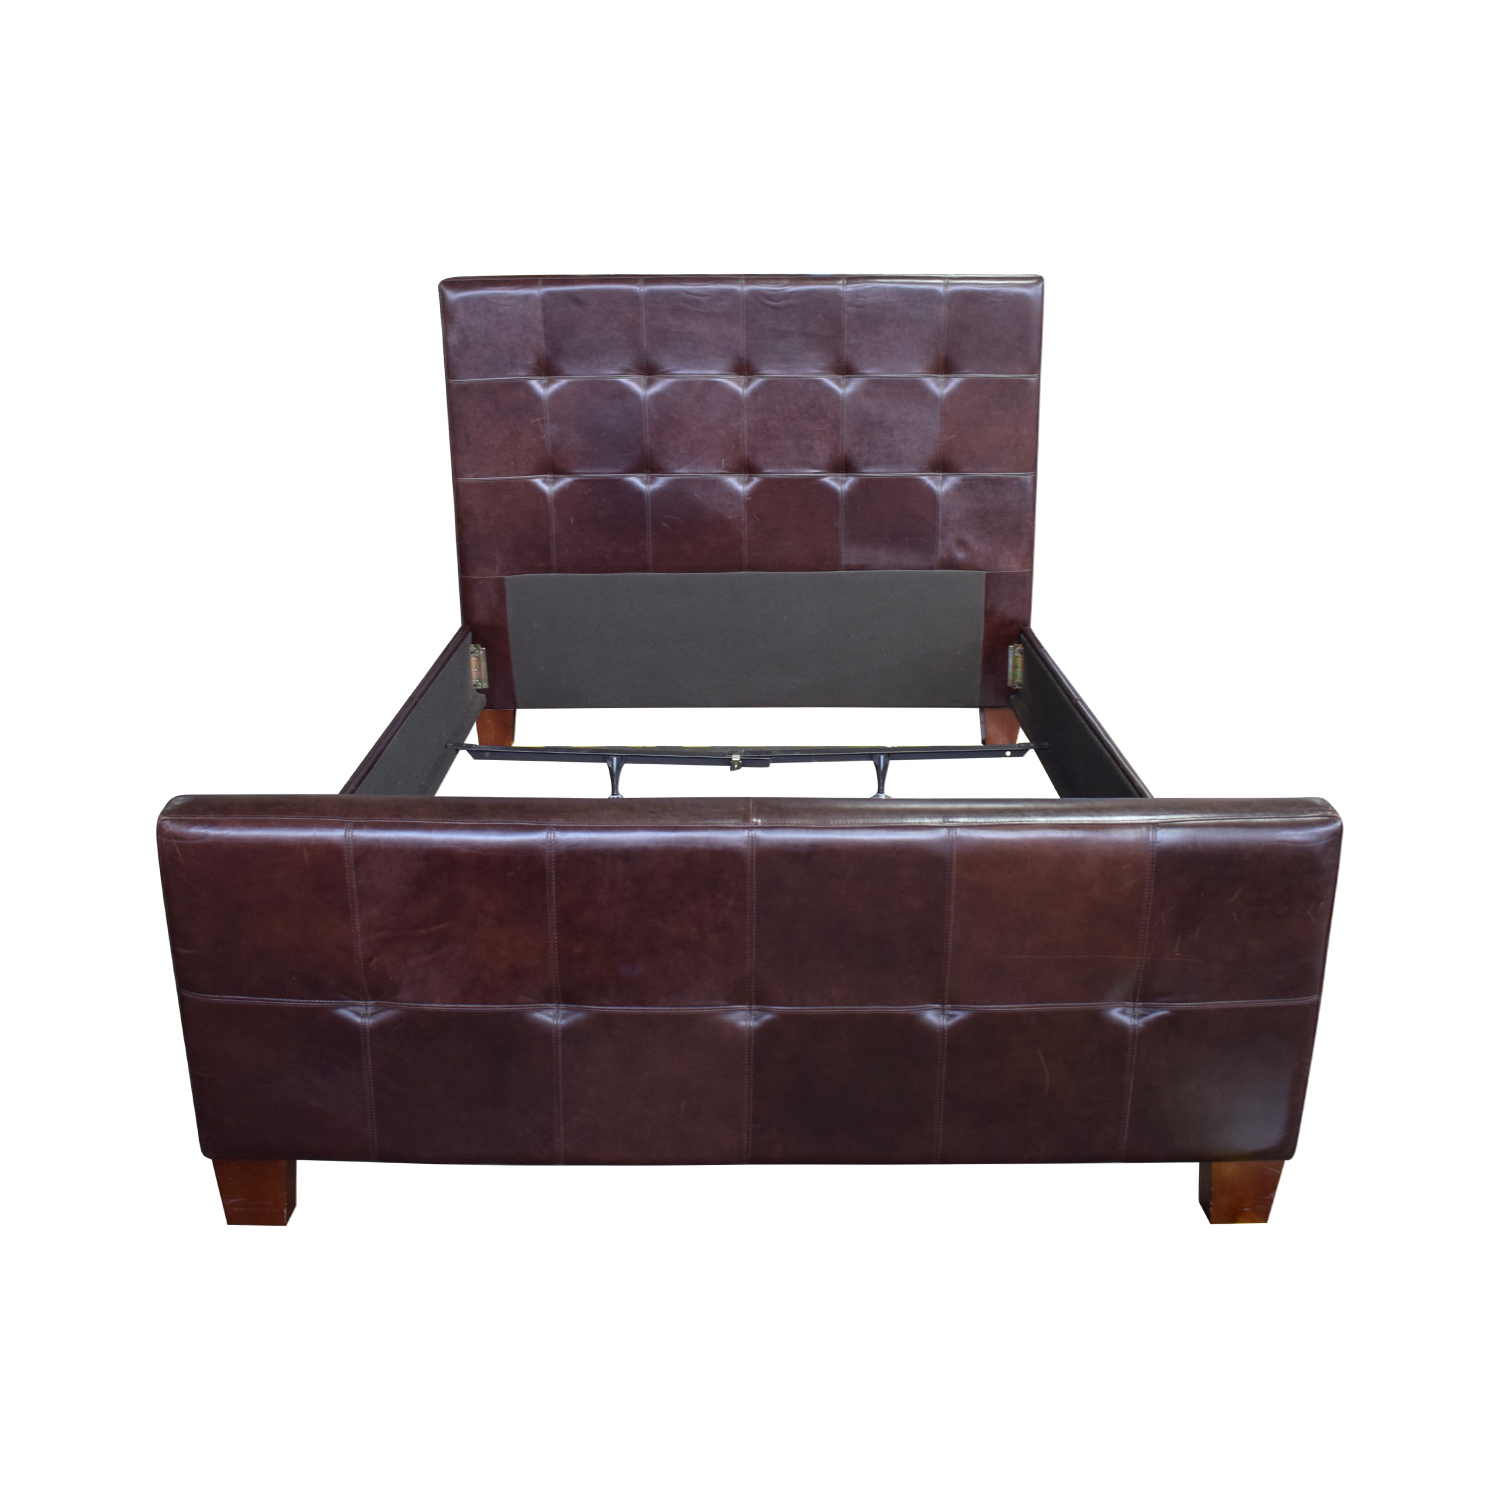 Crate & Barrel Brown Tufted Leather Queen Bed Sale